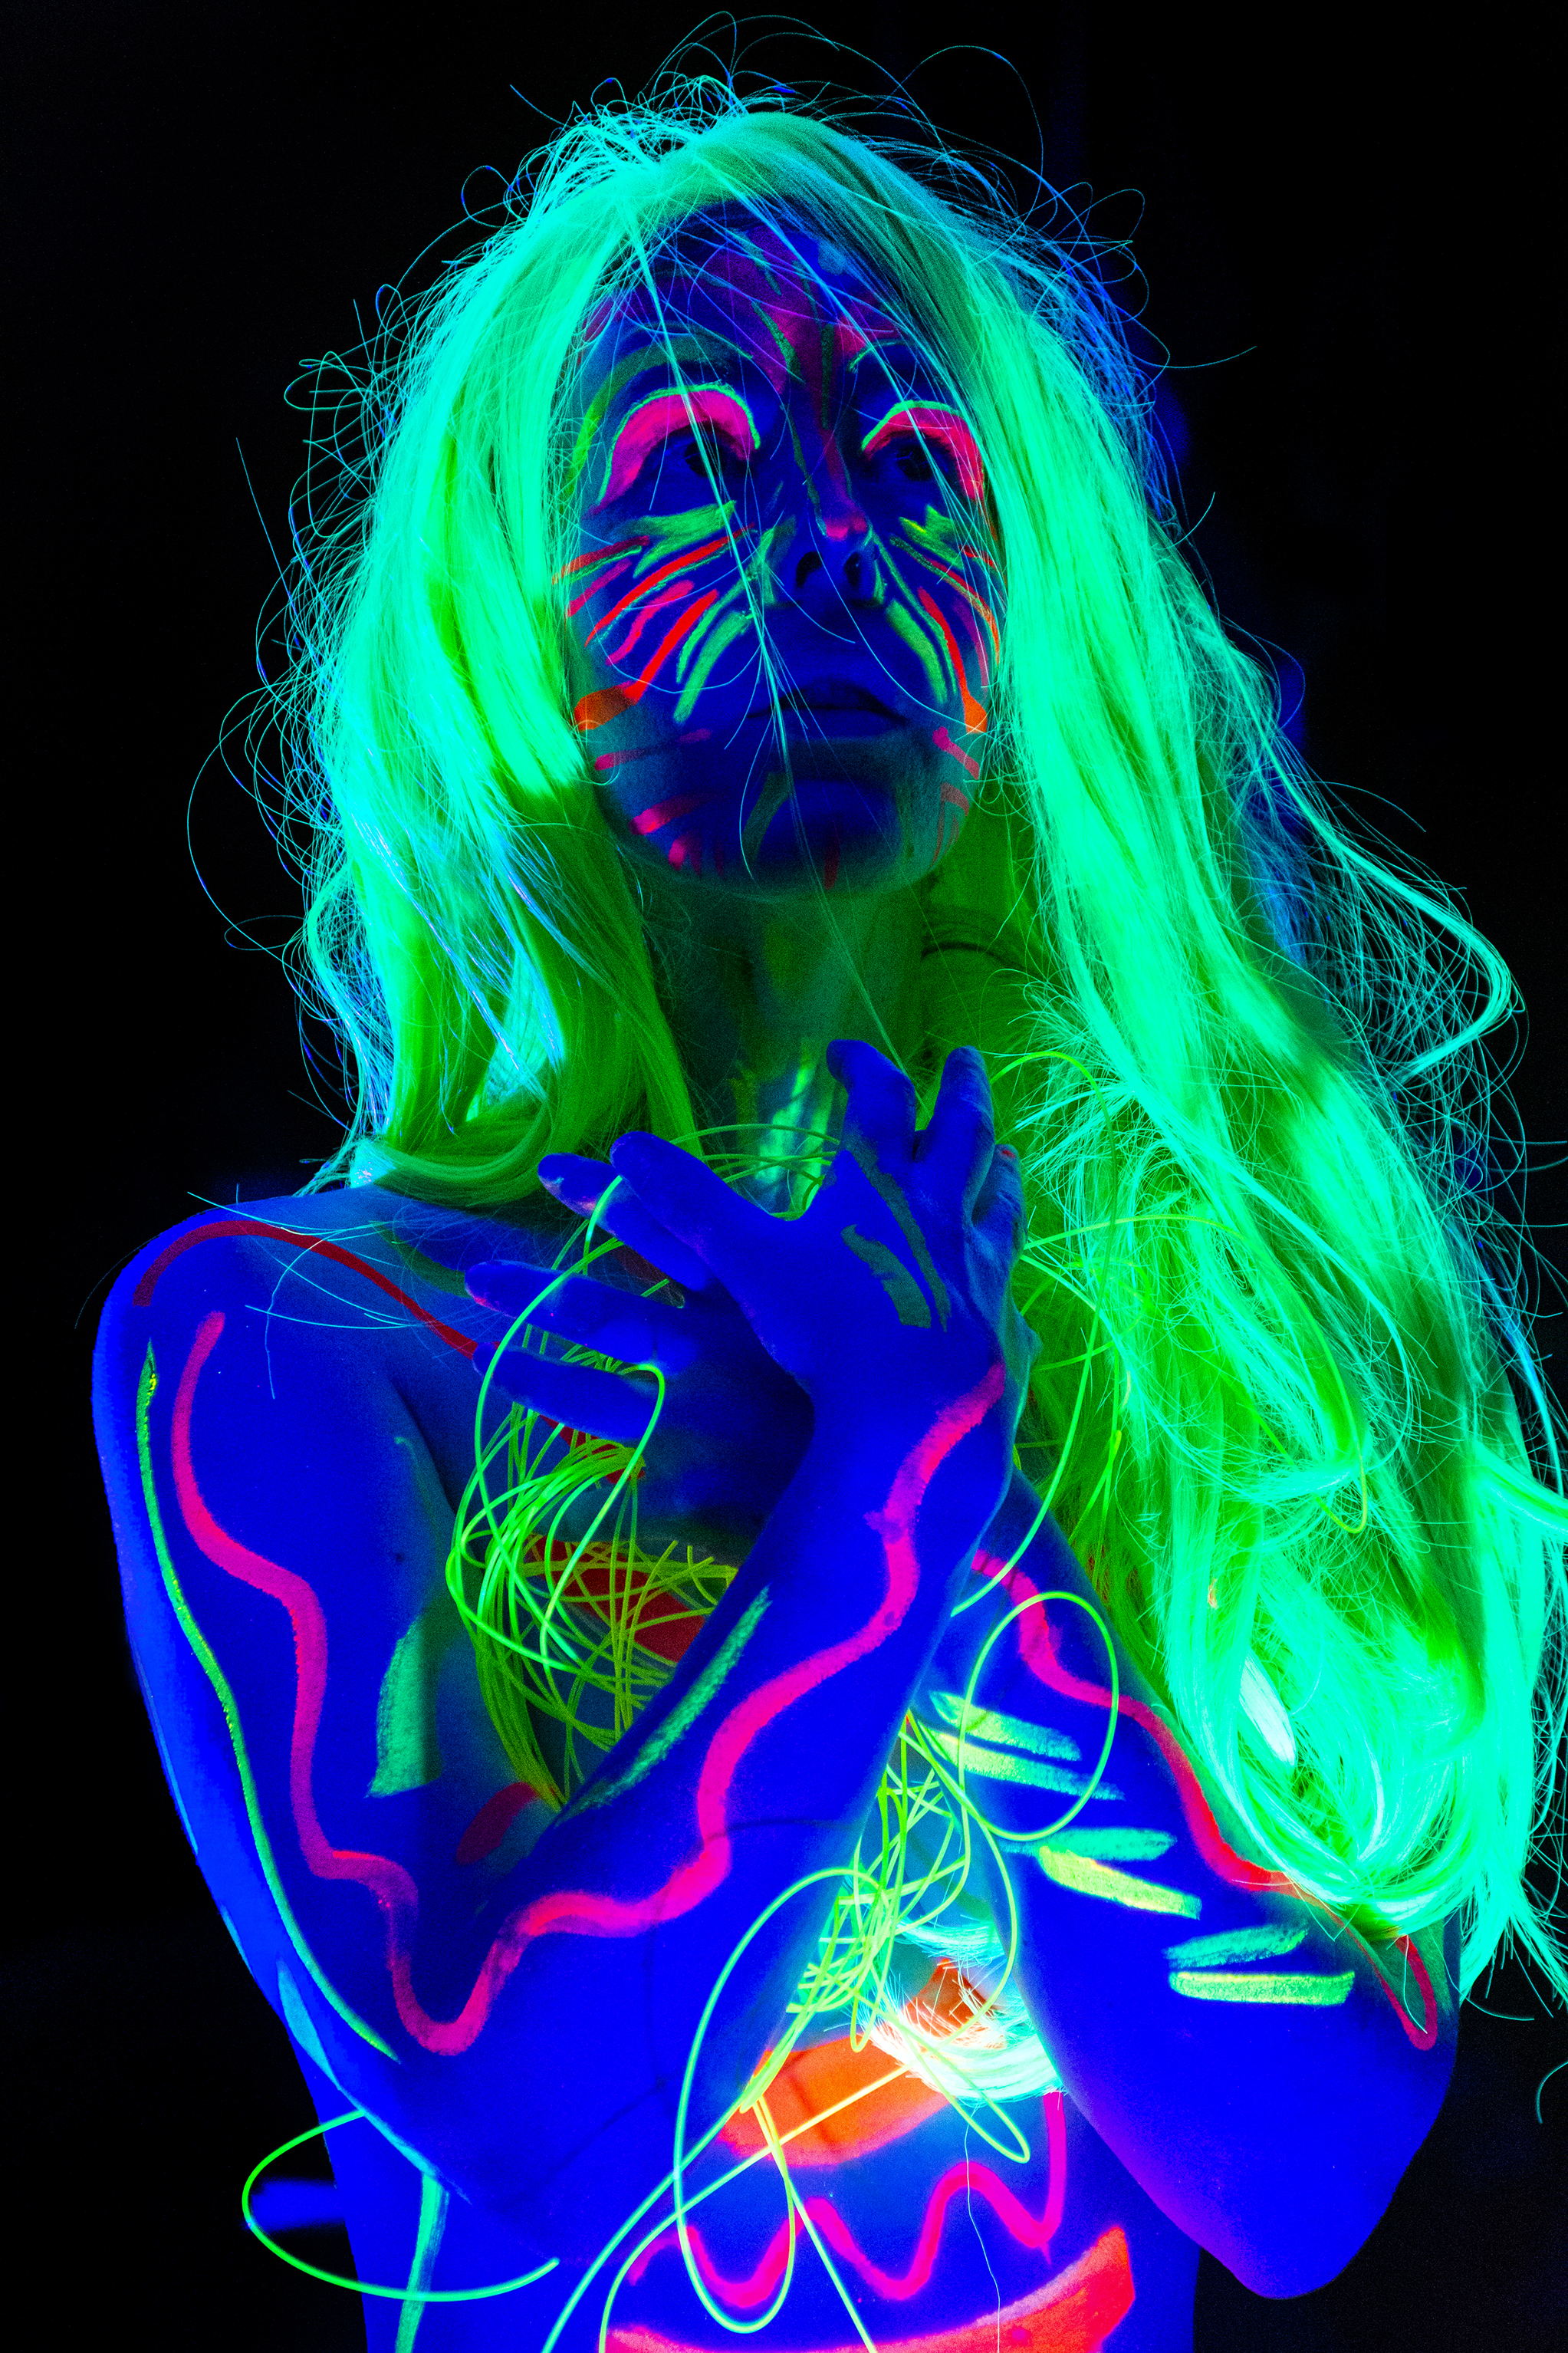 Steph modelling for Neon Naked.